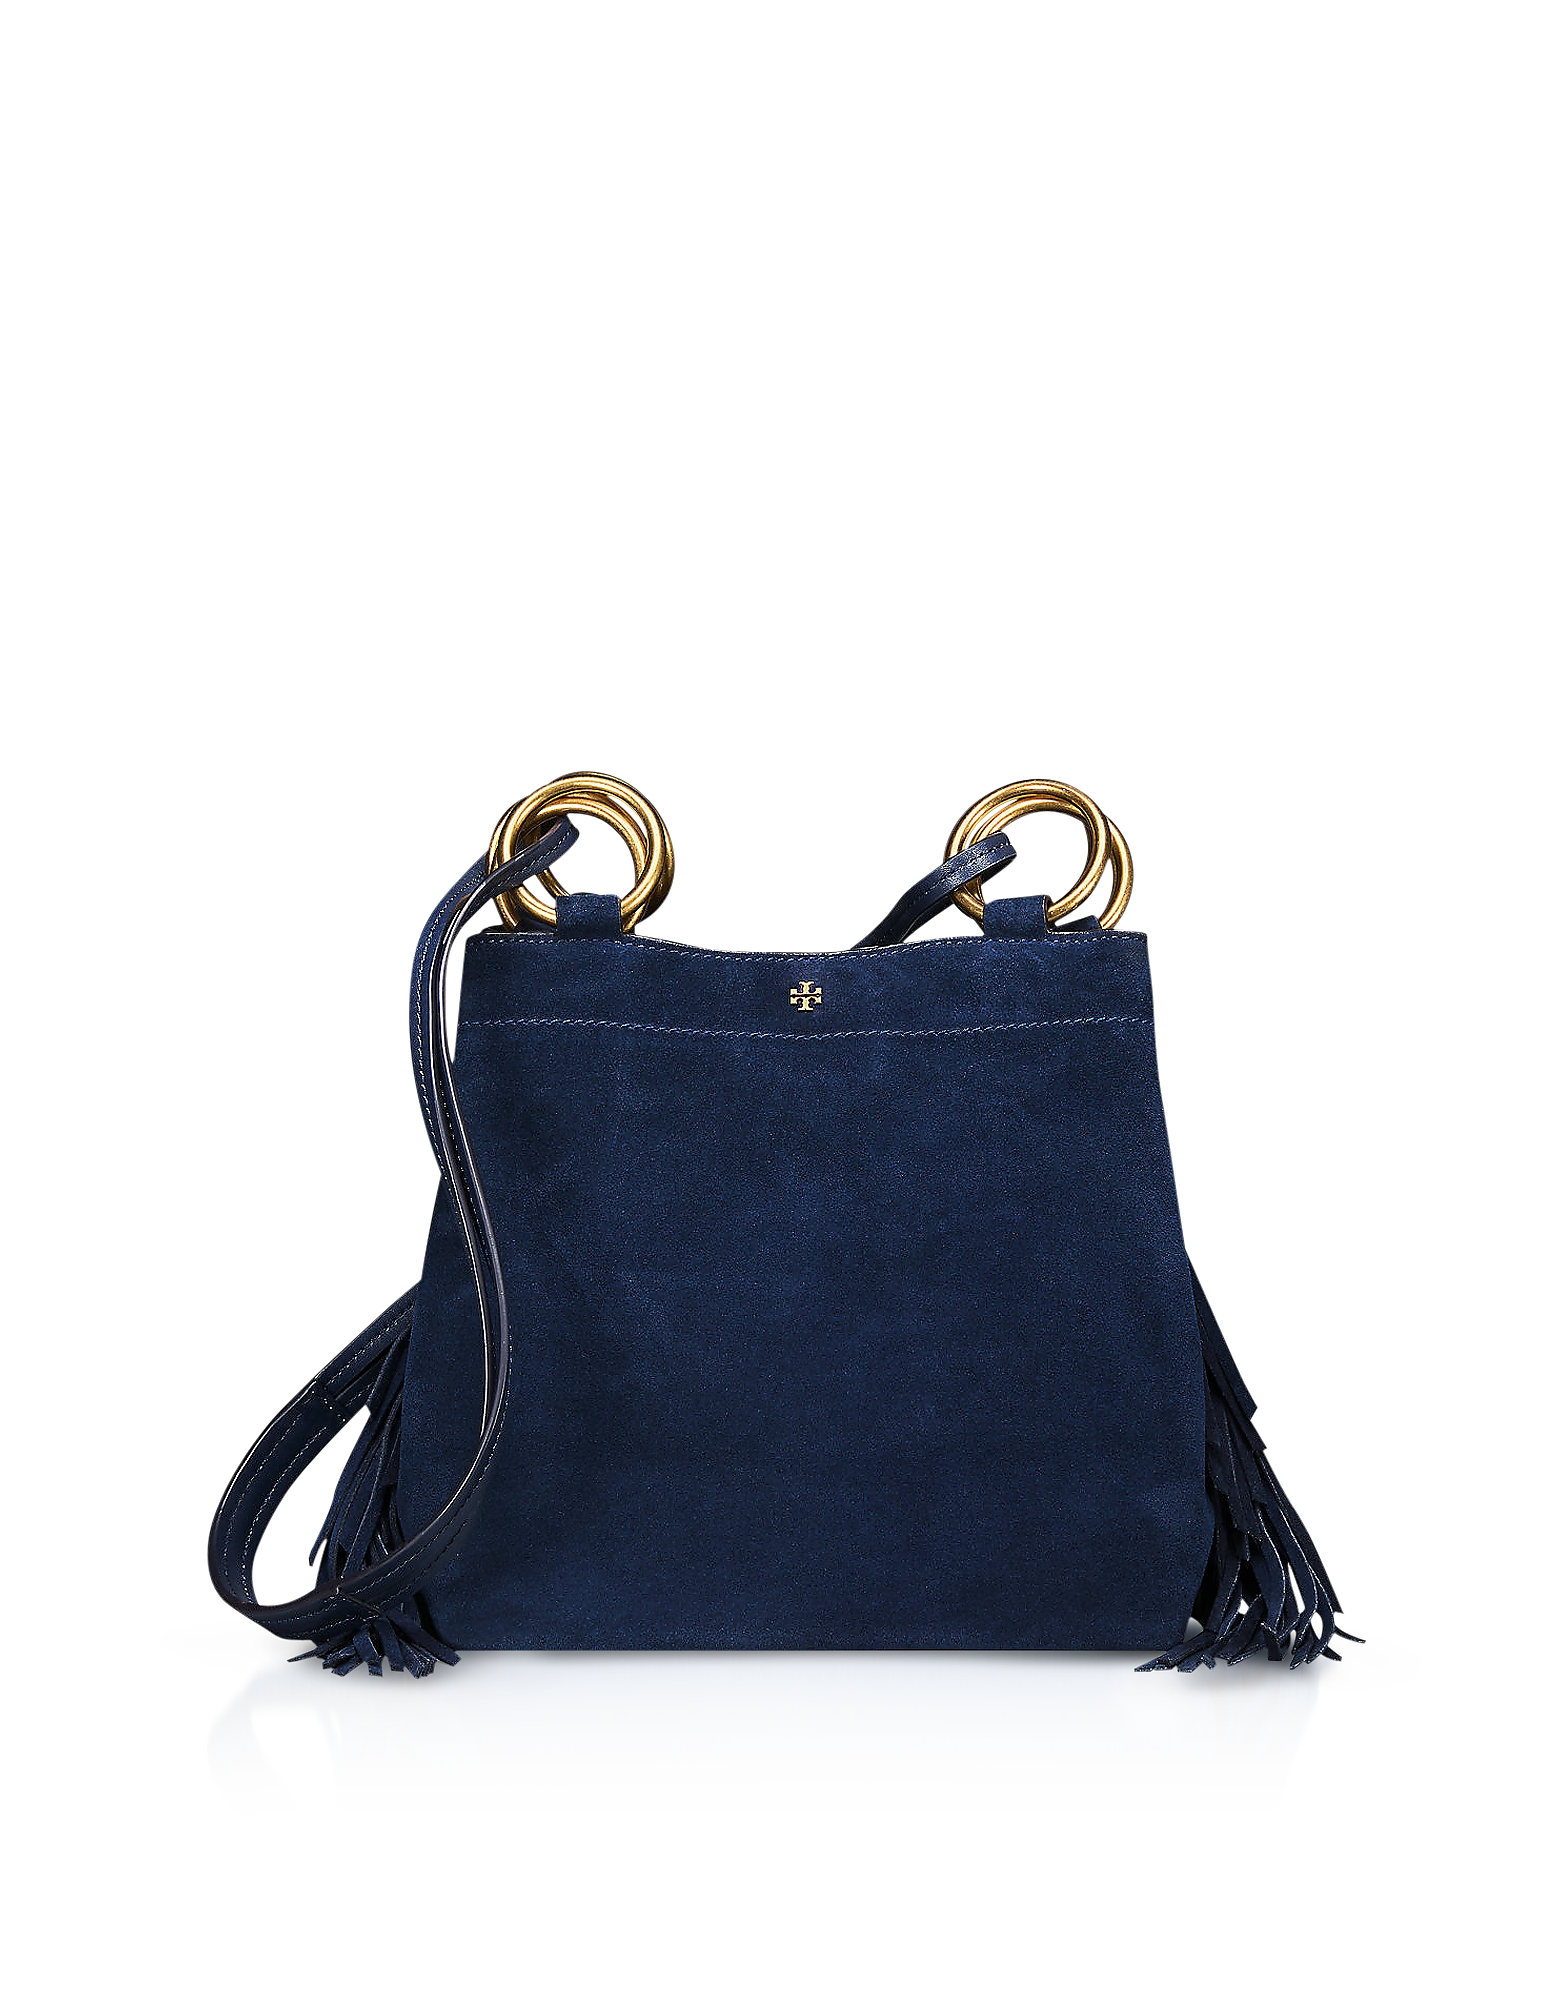 Tory Burch Handbags, Farrah Fringe Mini Bag